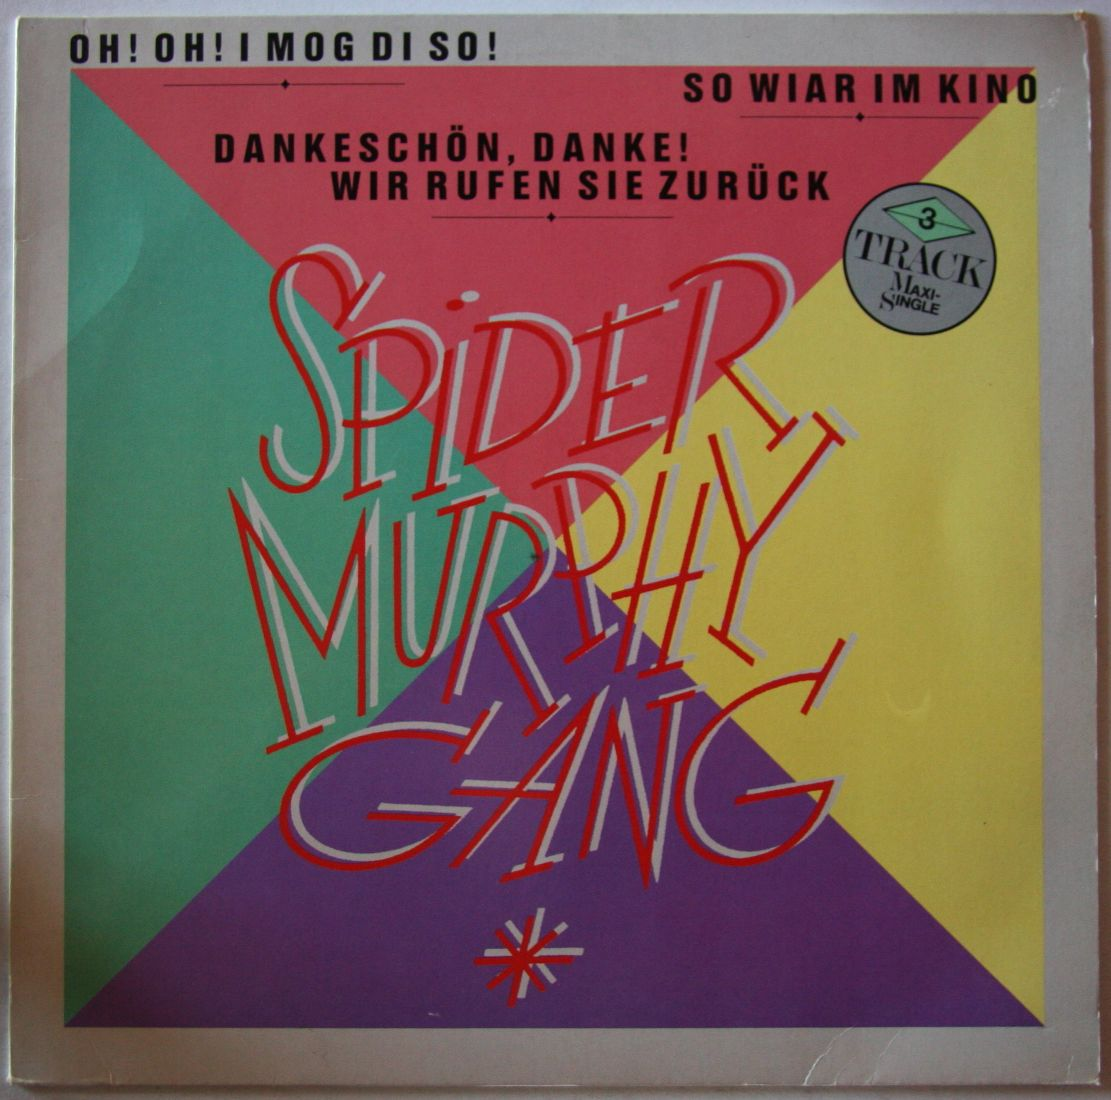 Spider Murphy Gang - Oh! Oh! I Mog Di So!